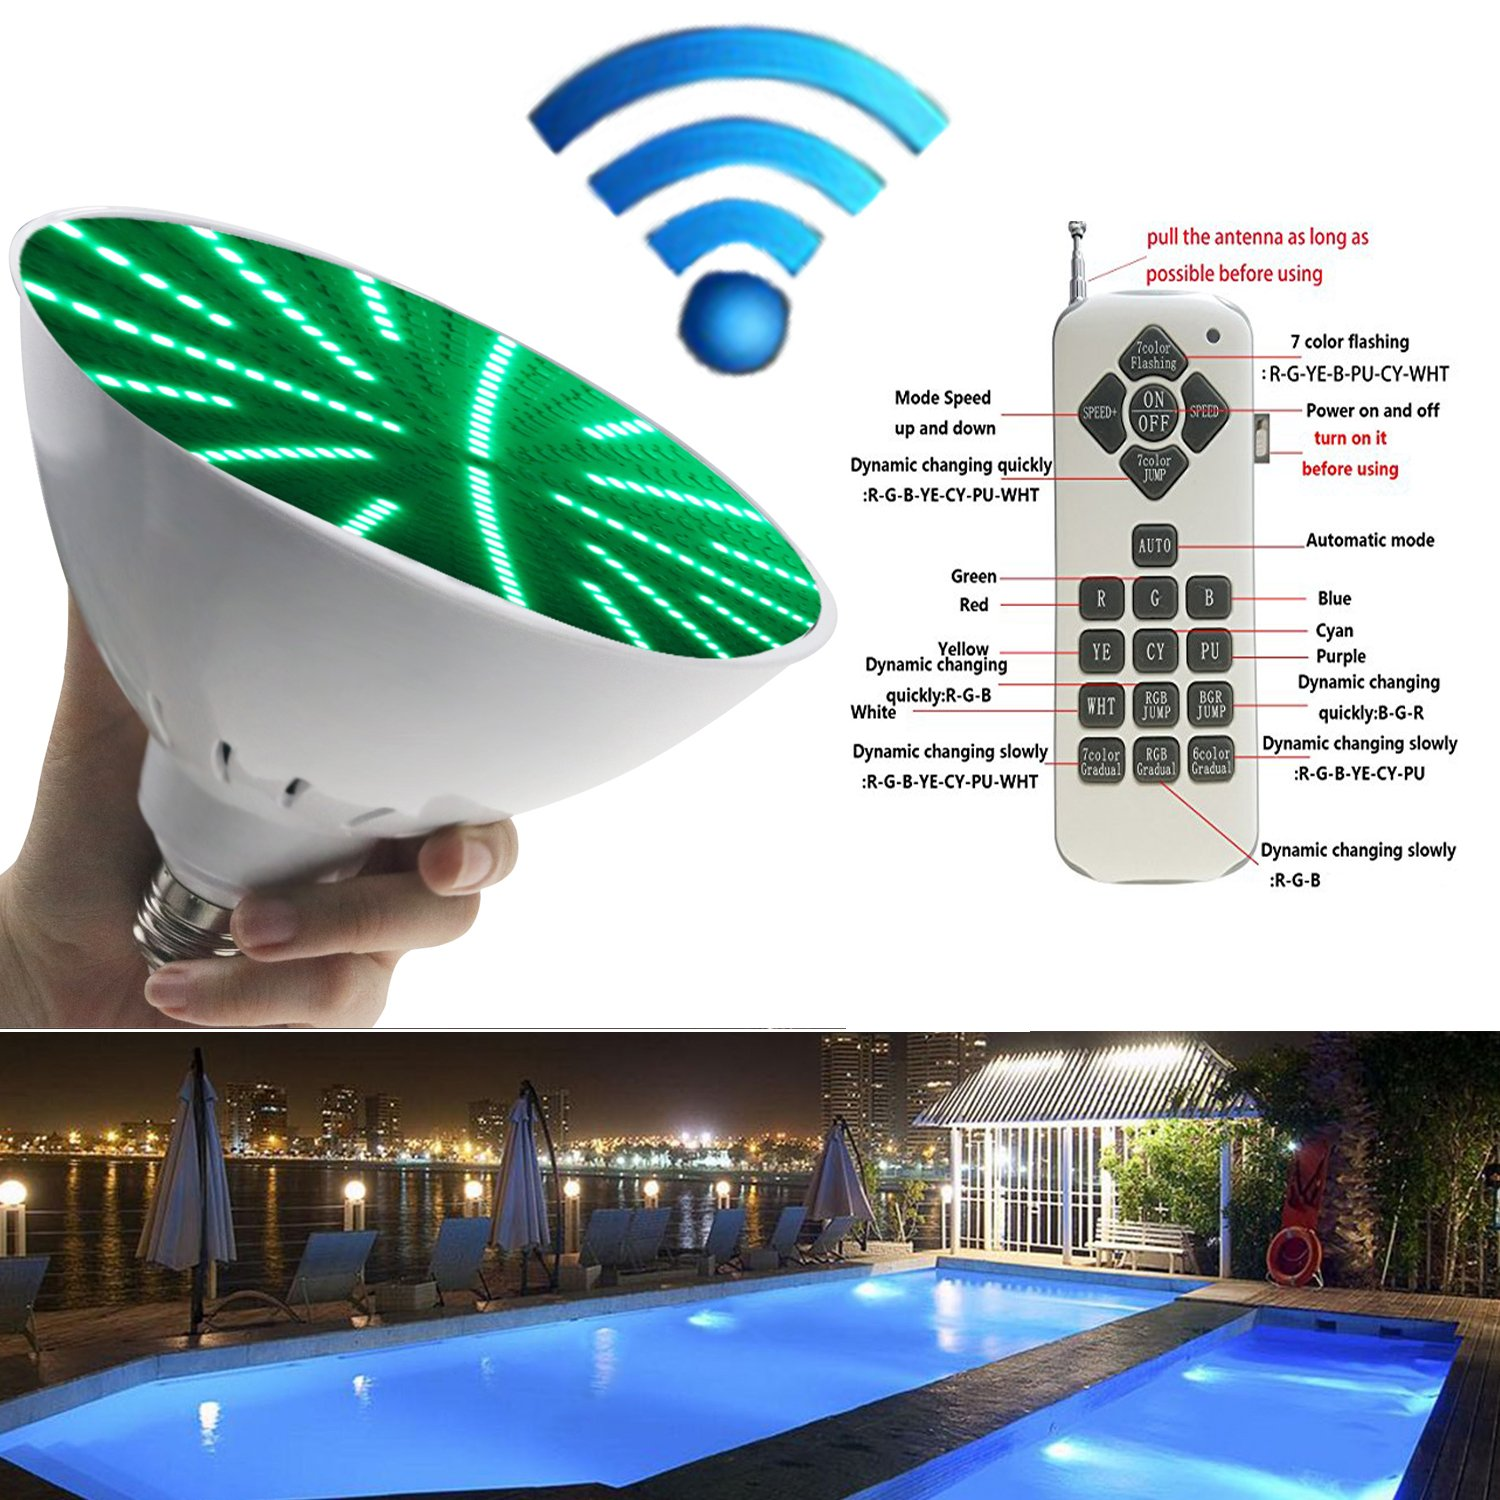 Swimming LED Underwater Light 120V 35W RGB Color Changing LED Pool Light Bulb E26/E27 Replacement for Inground Pool with Switch Remote Control Light Fixture by Bentolin (Image #6)